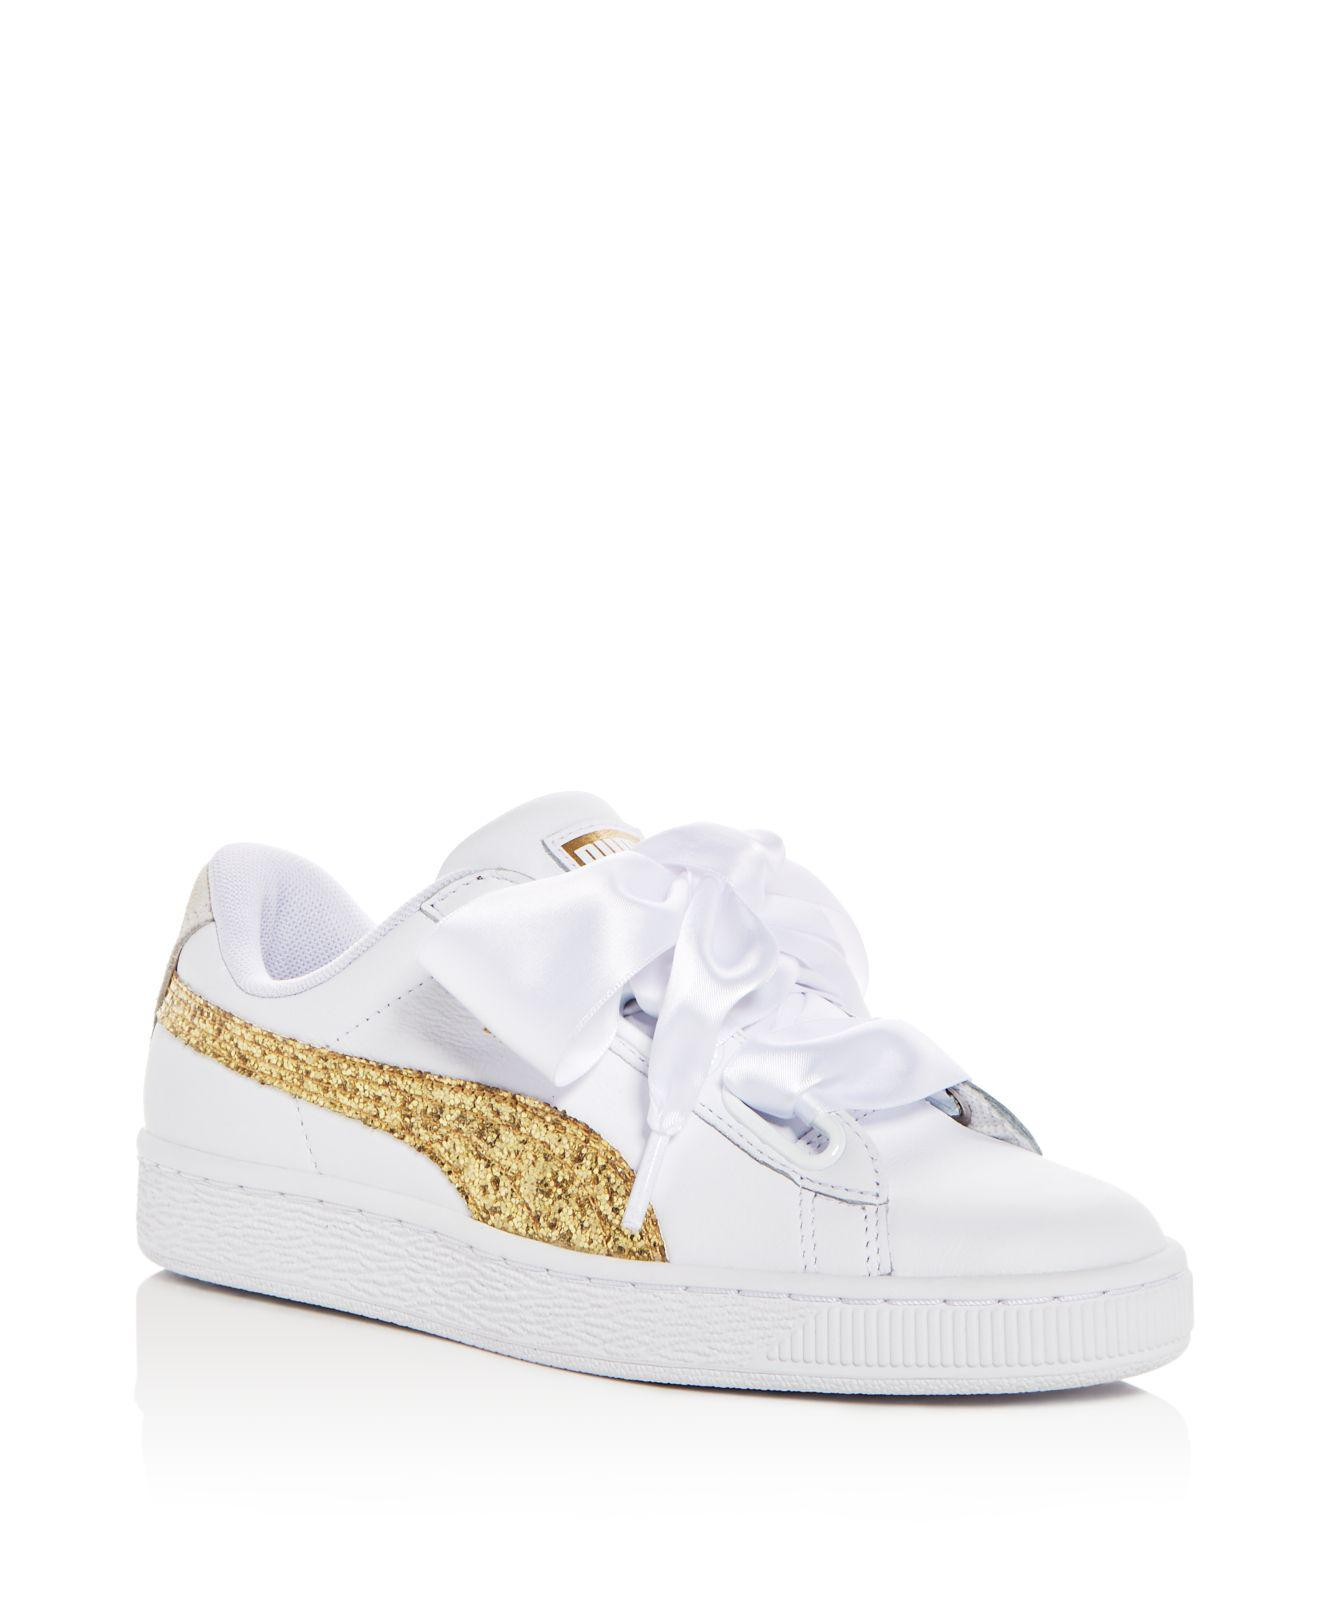 Puma Women's Basket Heart Canvas & Glitter Lace Up Sneakers NJS1J